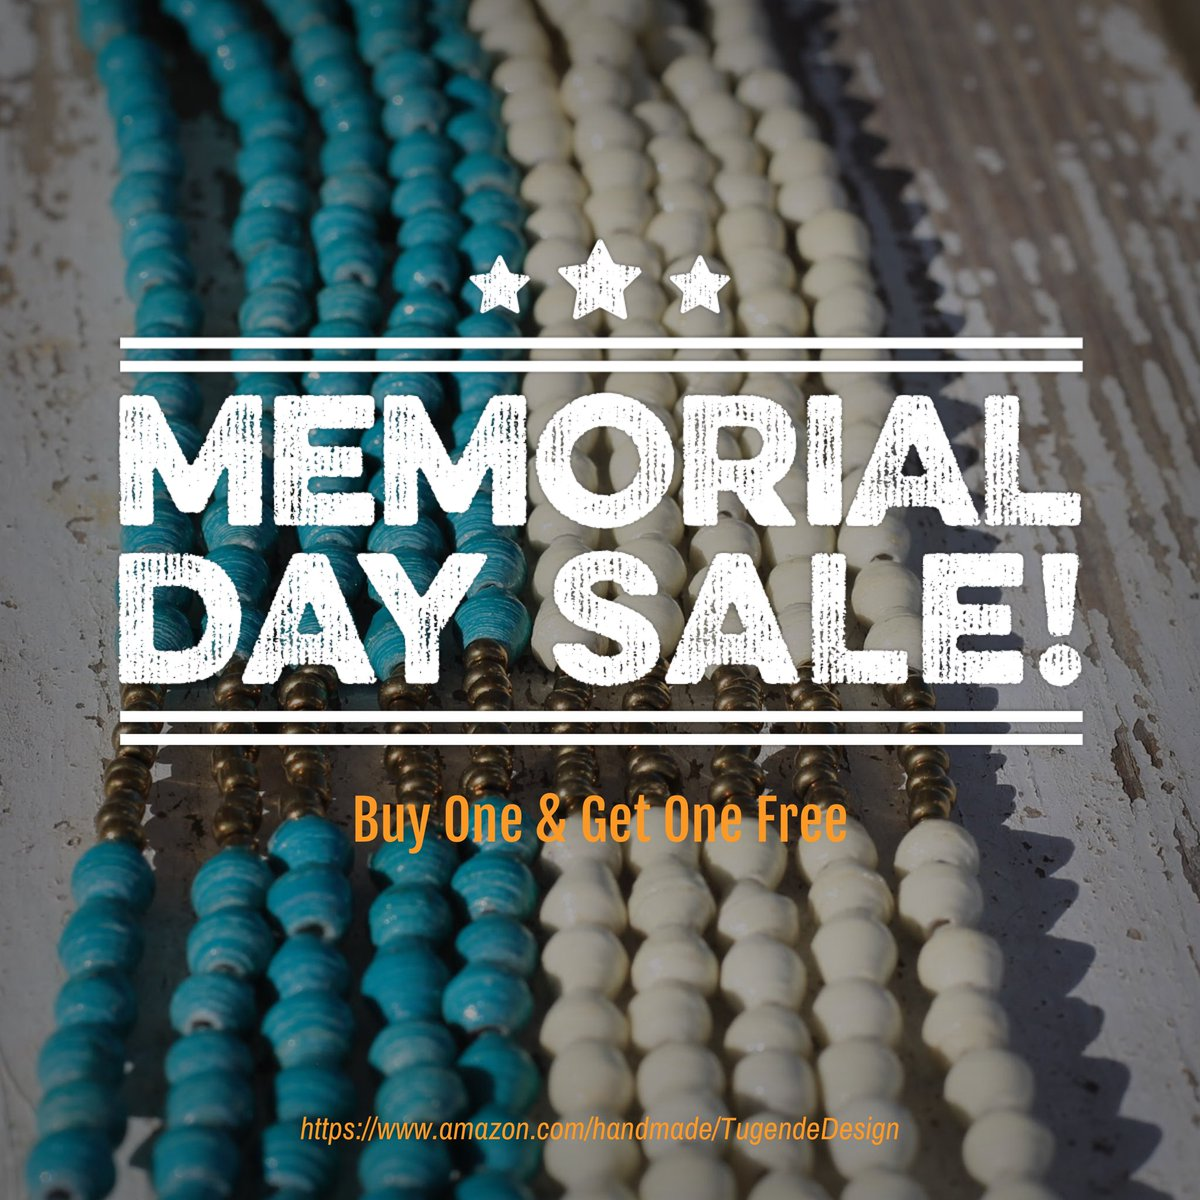 Our #bogo sale is on @amazonhandmade check it out  #sale #beadedjewelry #bling #MemorialDaySale #handmadejewelry #necklaces #paperbeads #socent #ecommerce #summerjewelry #affordablejewelry #socialenterprise #supersale #discount #shop #jewelryshop   https://www.amazon.com/handmade/TugendeDesign…pic.twitter.com/qKGpDeIPcn